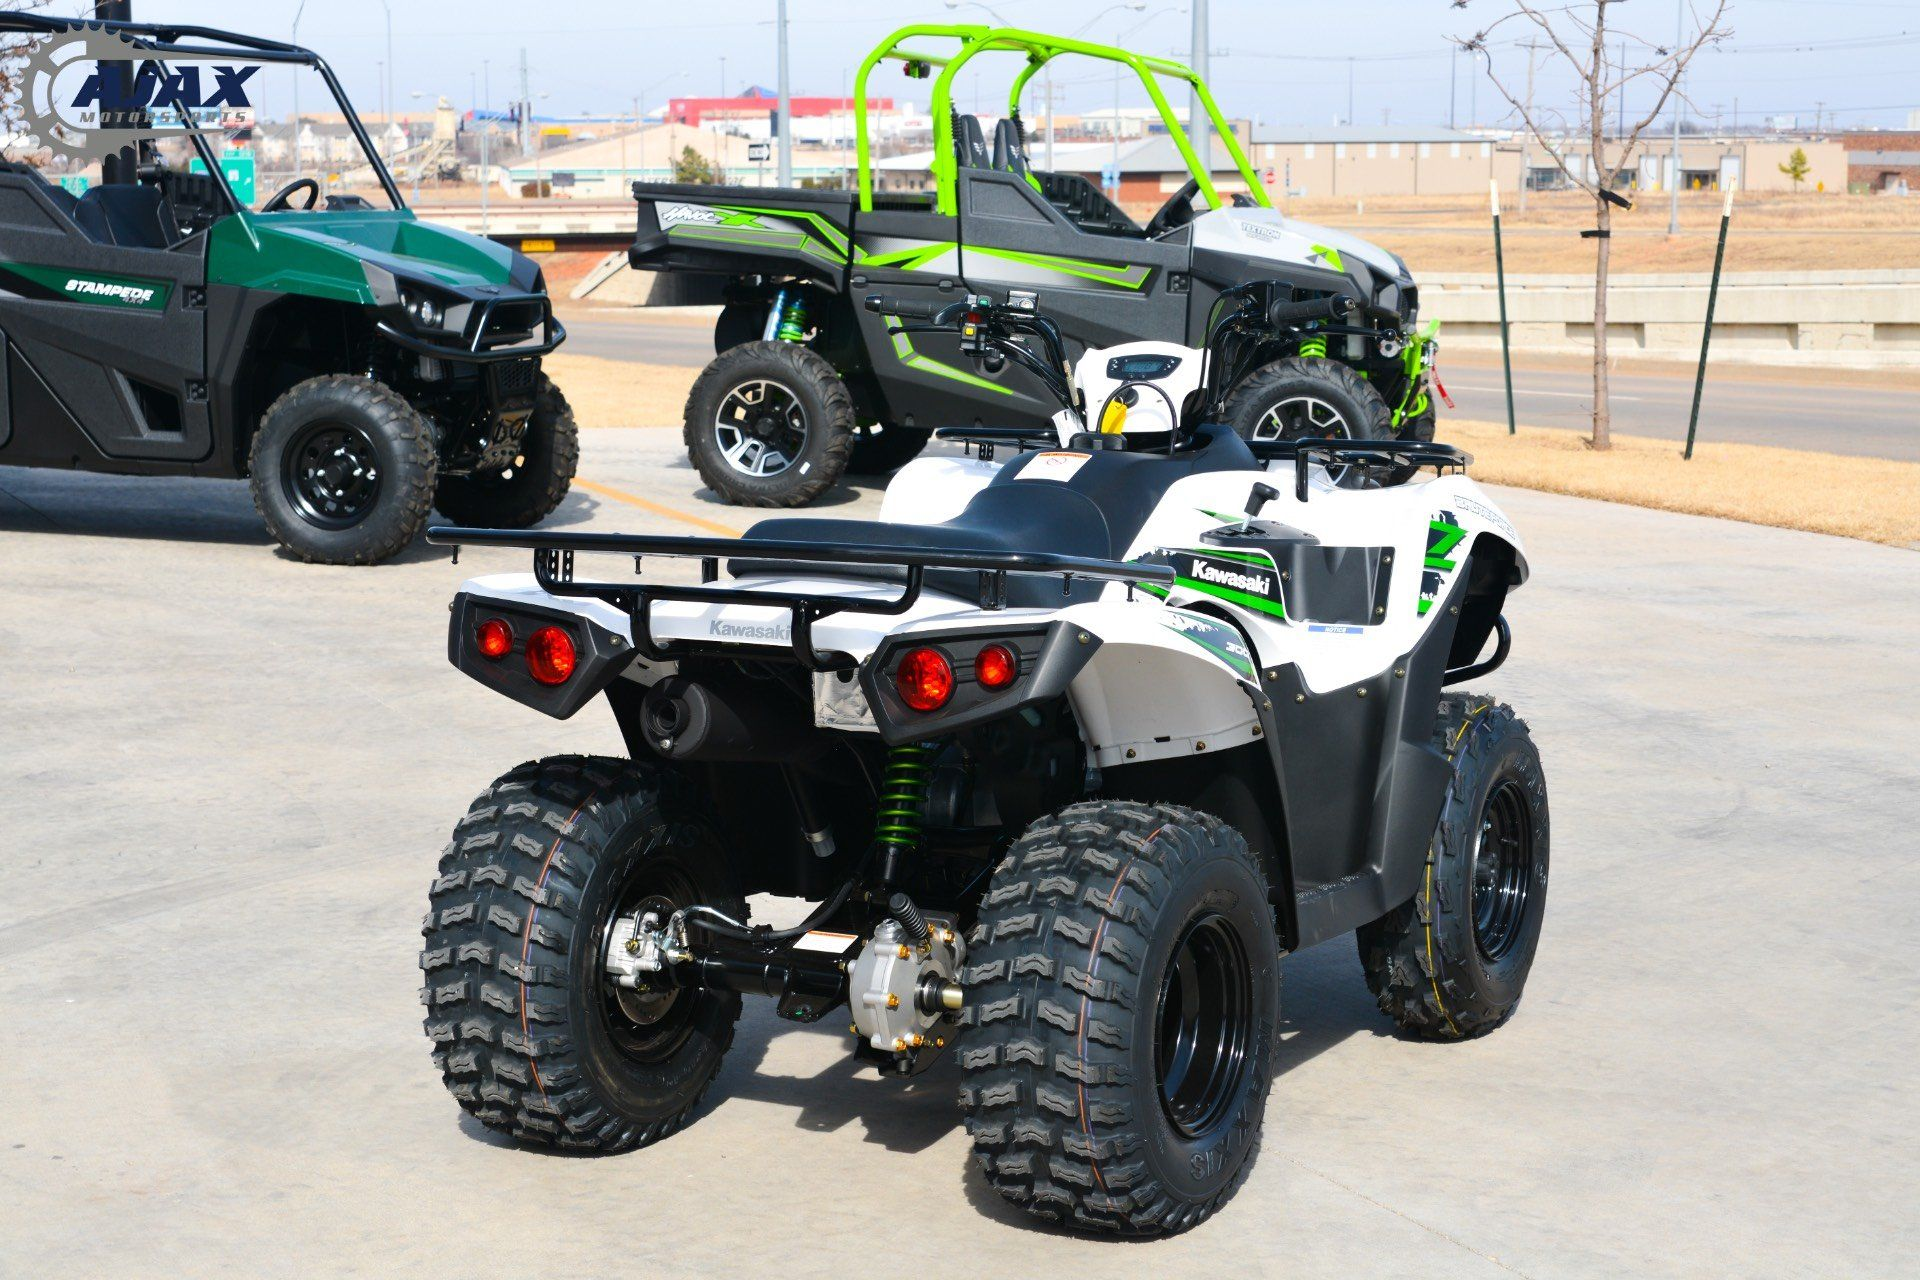 2018 Kawasaki Brute Force 300 in Oklahoma City, Oklahoma